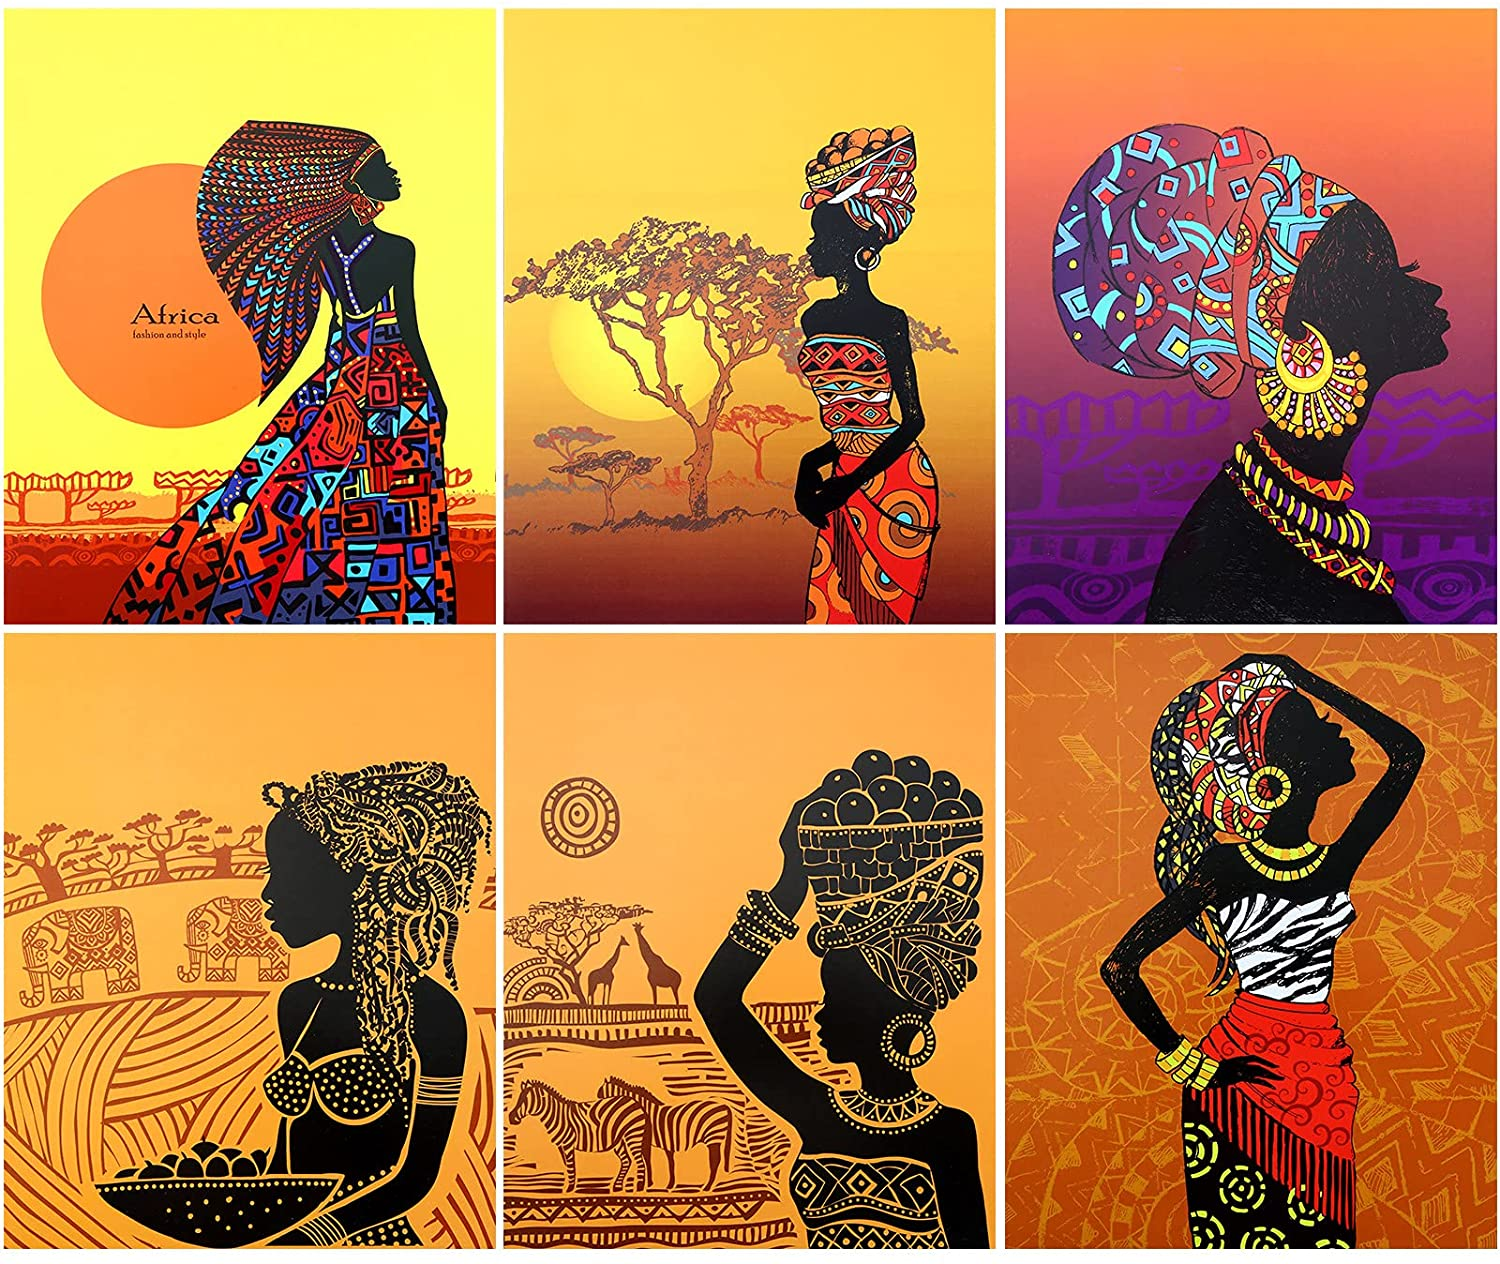 6 Pieces Retro Style African American Wall Art Painting Set Ethnic Ancient Theme Black Woman Wall Poster Room Wall Artworks for Home Decor Girls Bedroom Living Room, 8 x 10 Inch Unframed